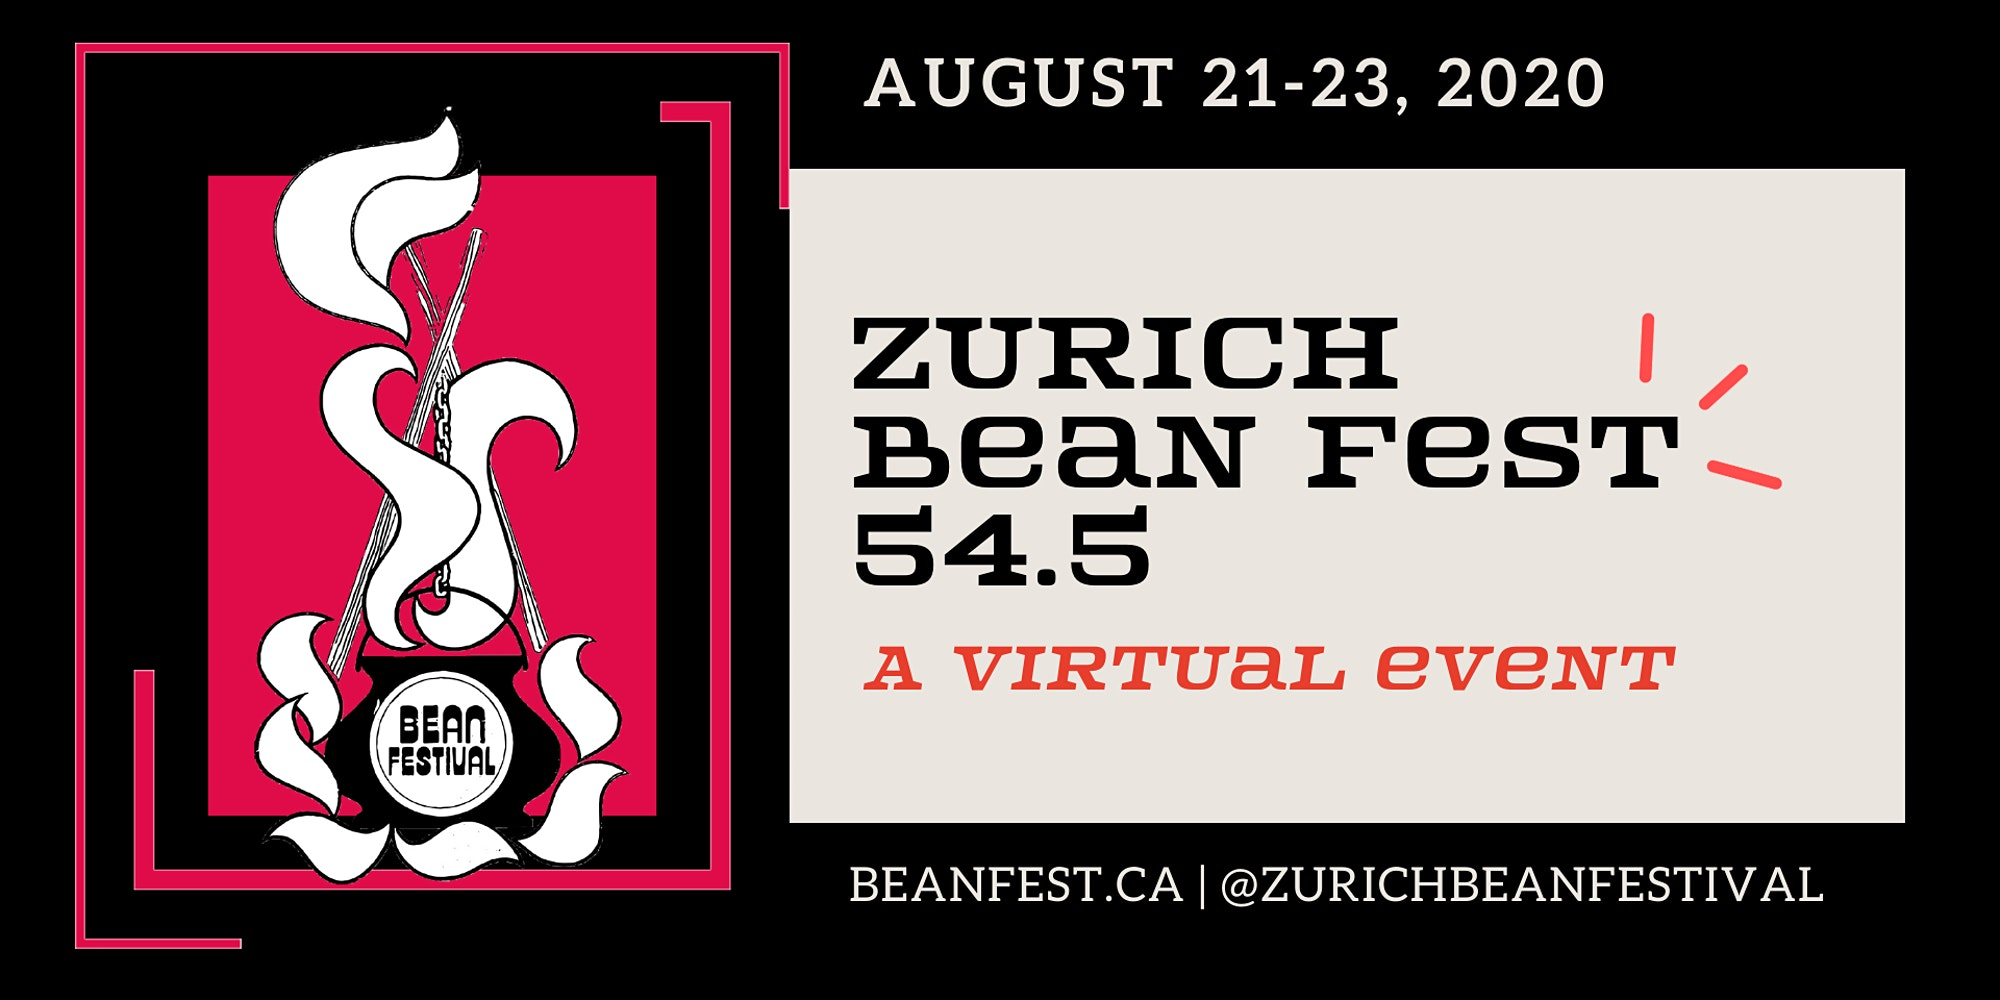 Bean Festival 54.5 A Virtual Event